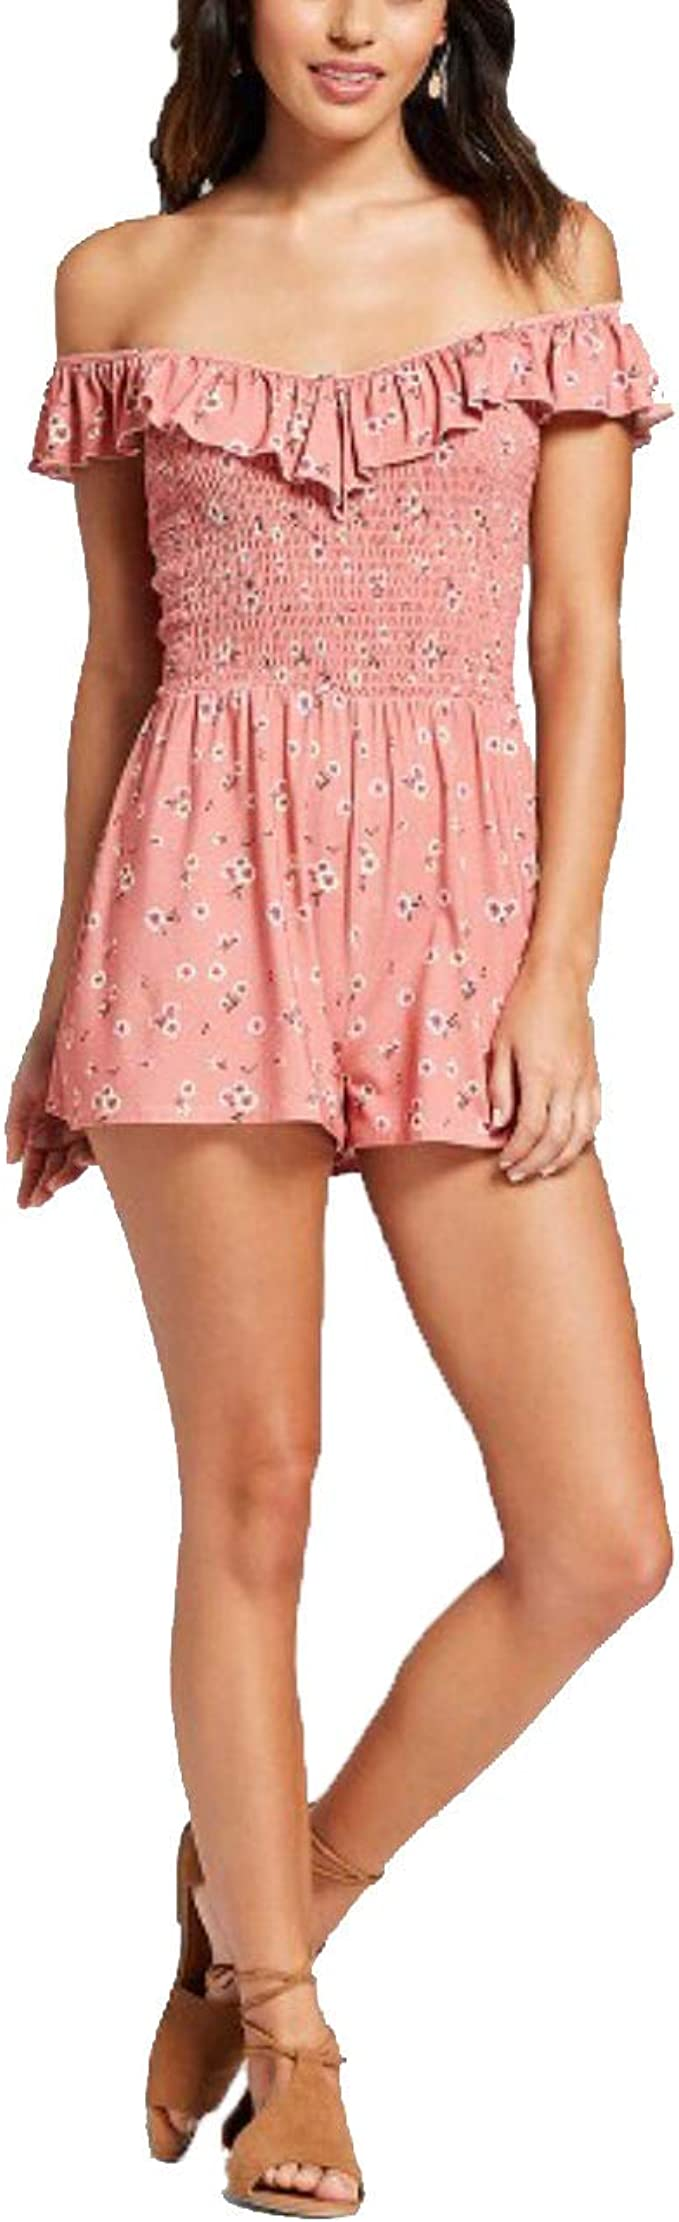 Womens romper sleeveless brand Xhilaration new with tags color brick red floral